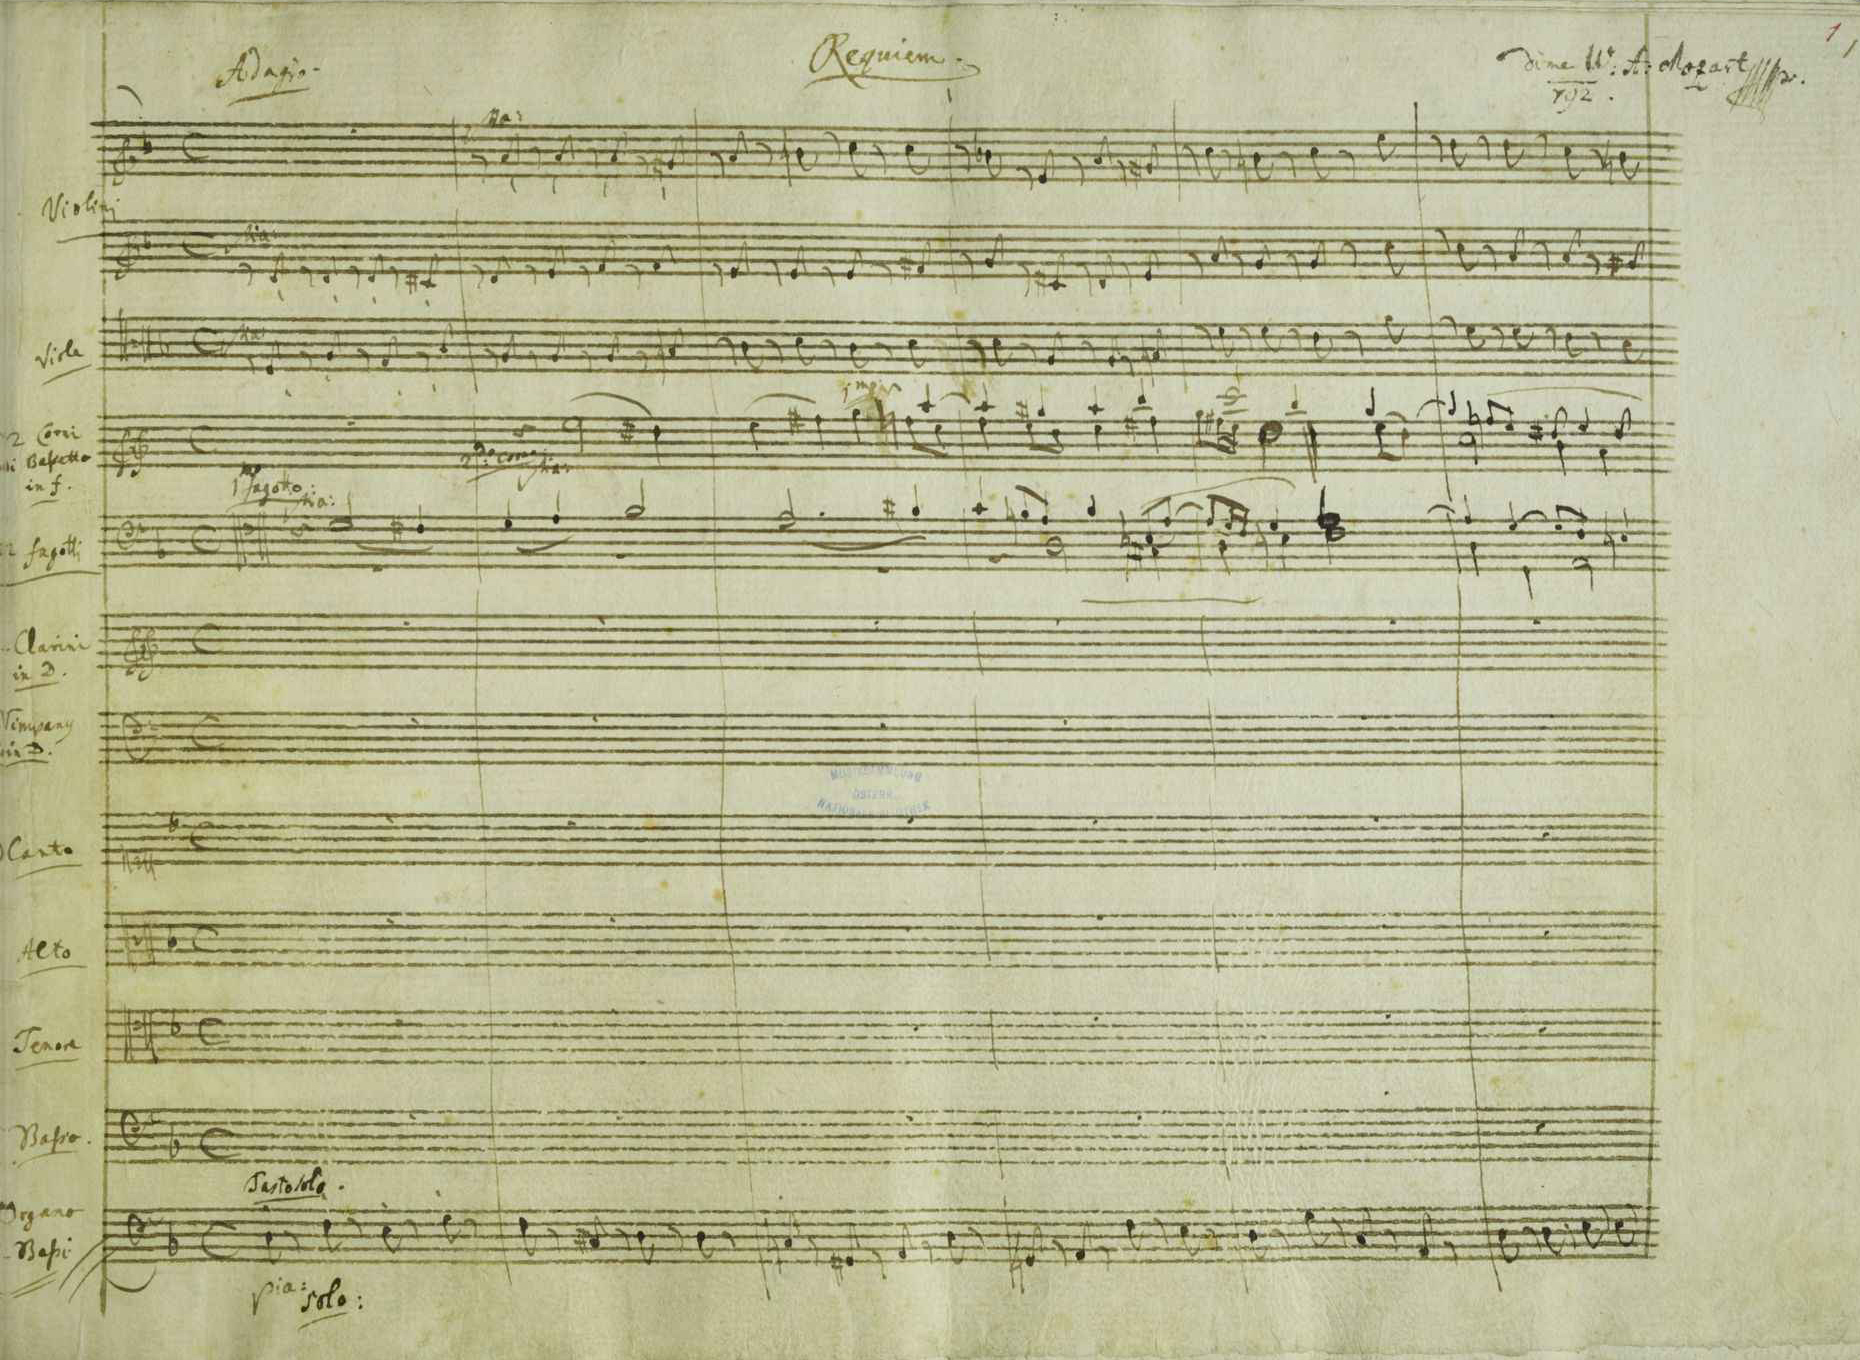 A portion of the manuscript of Mozart's Requie...